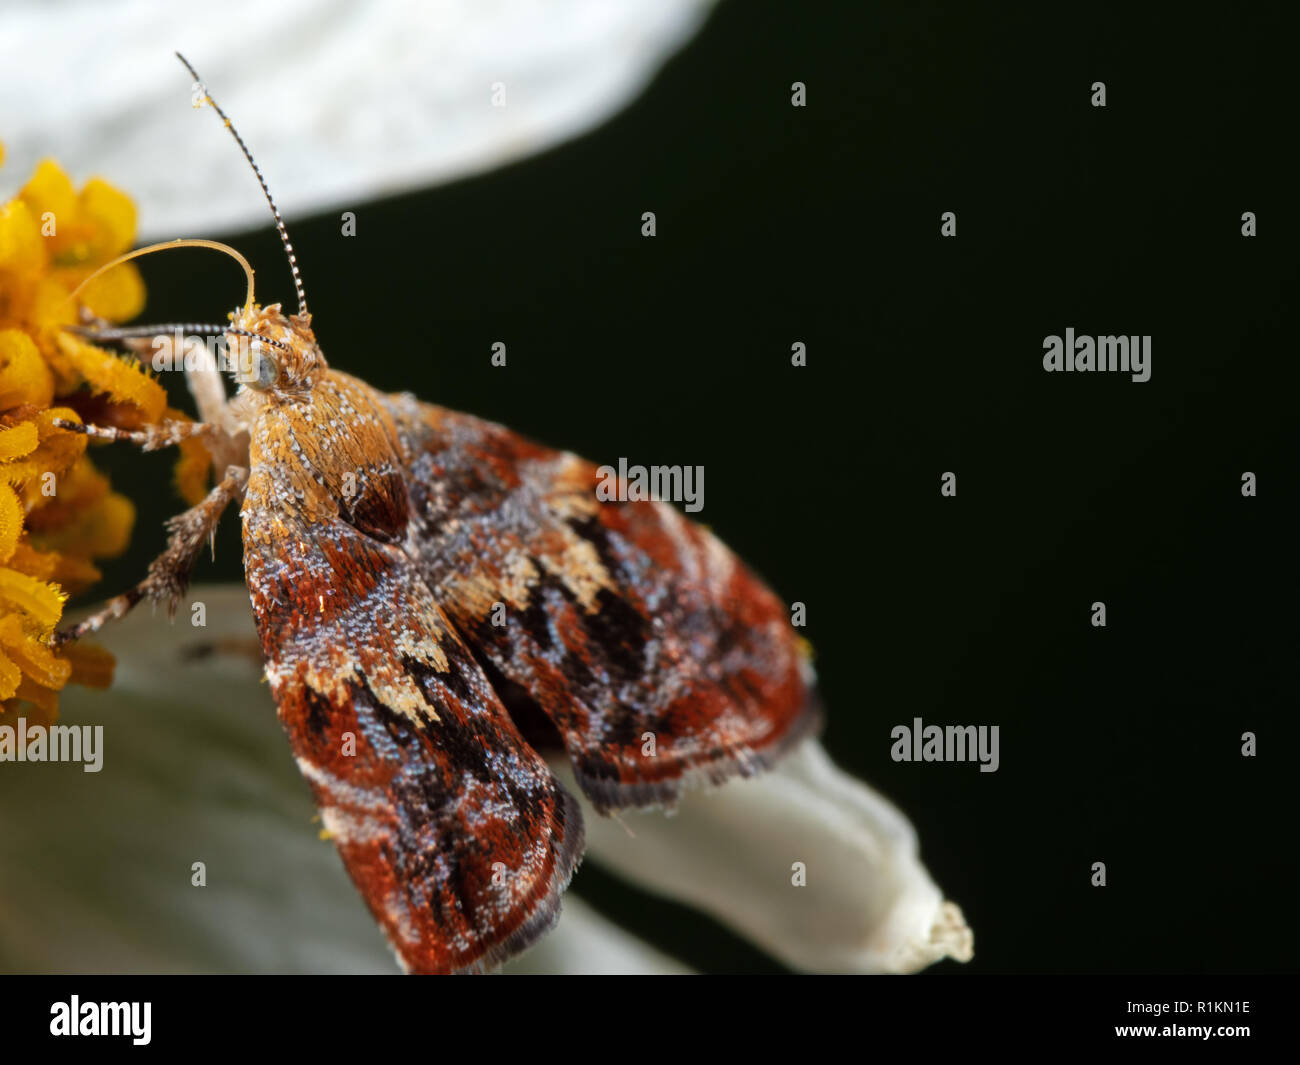 Macro Photography of Butterfly Sucking Nectar from Flower - Stock Image